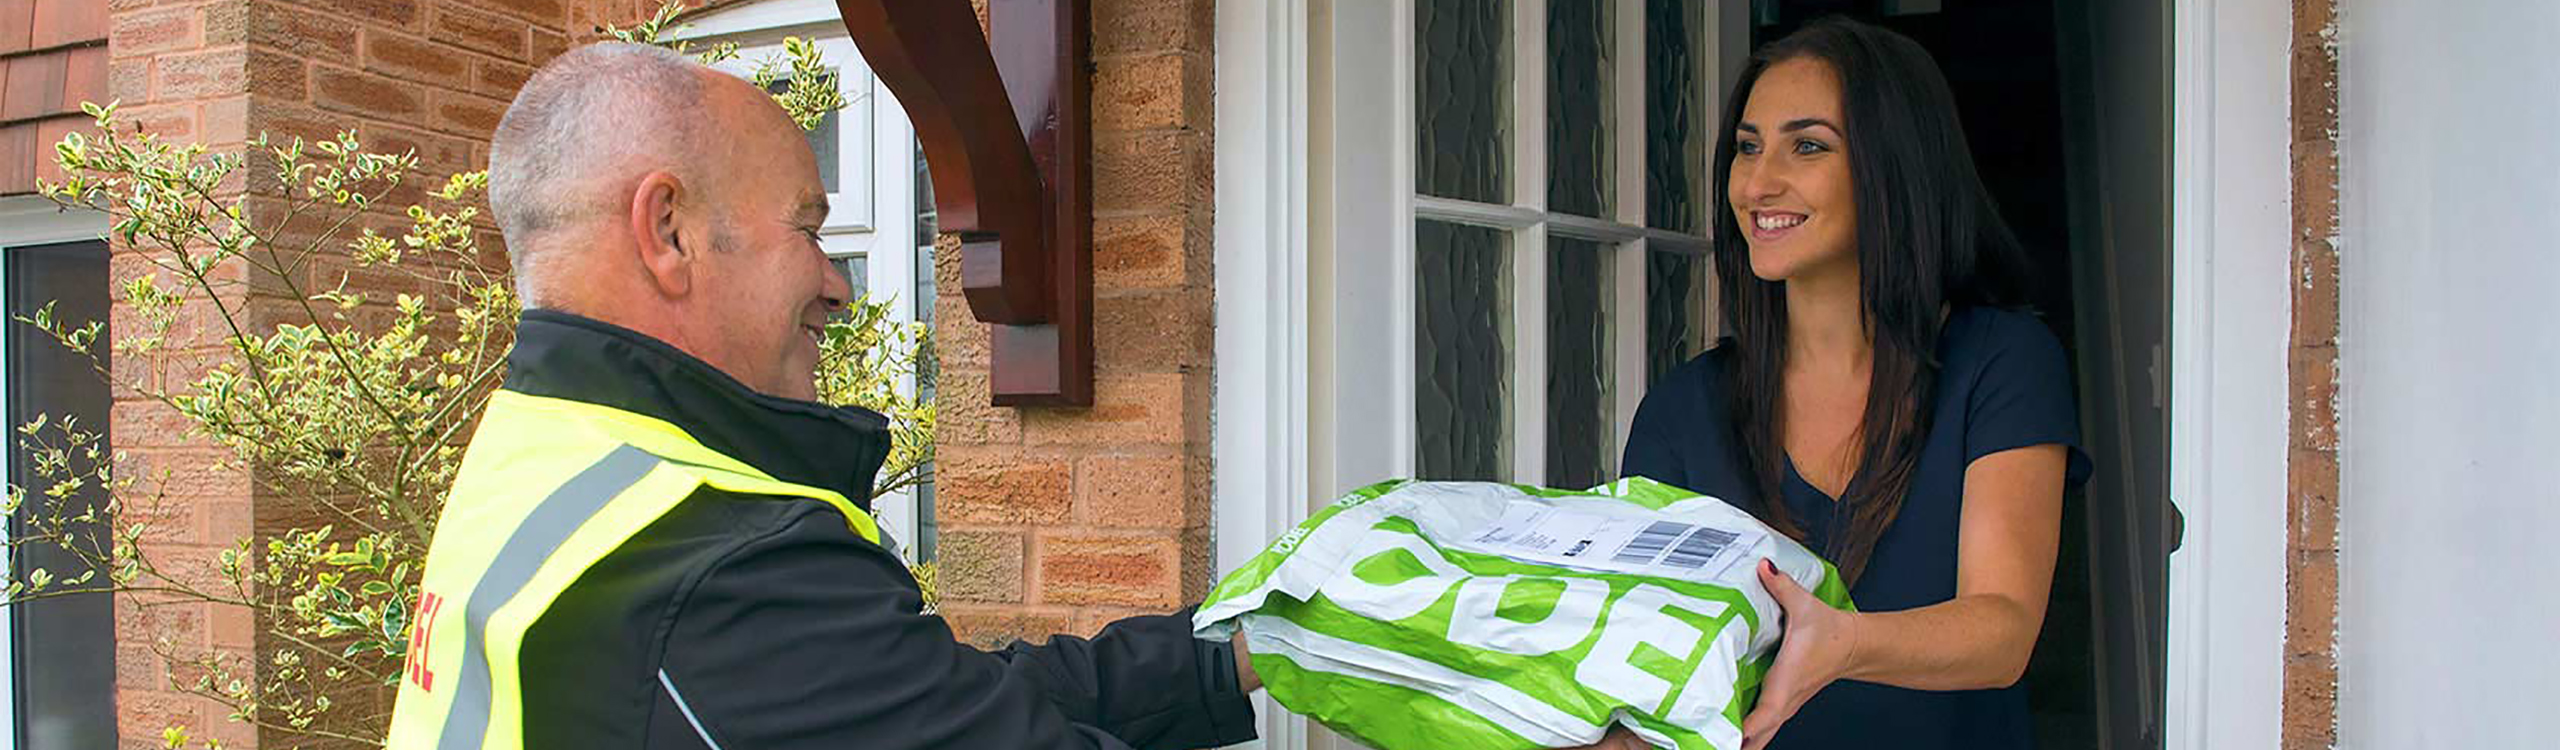 yodel-couriers